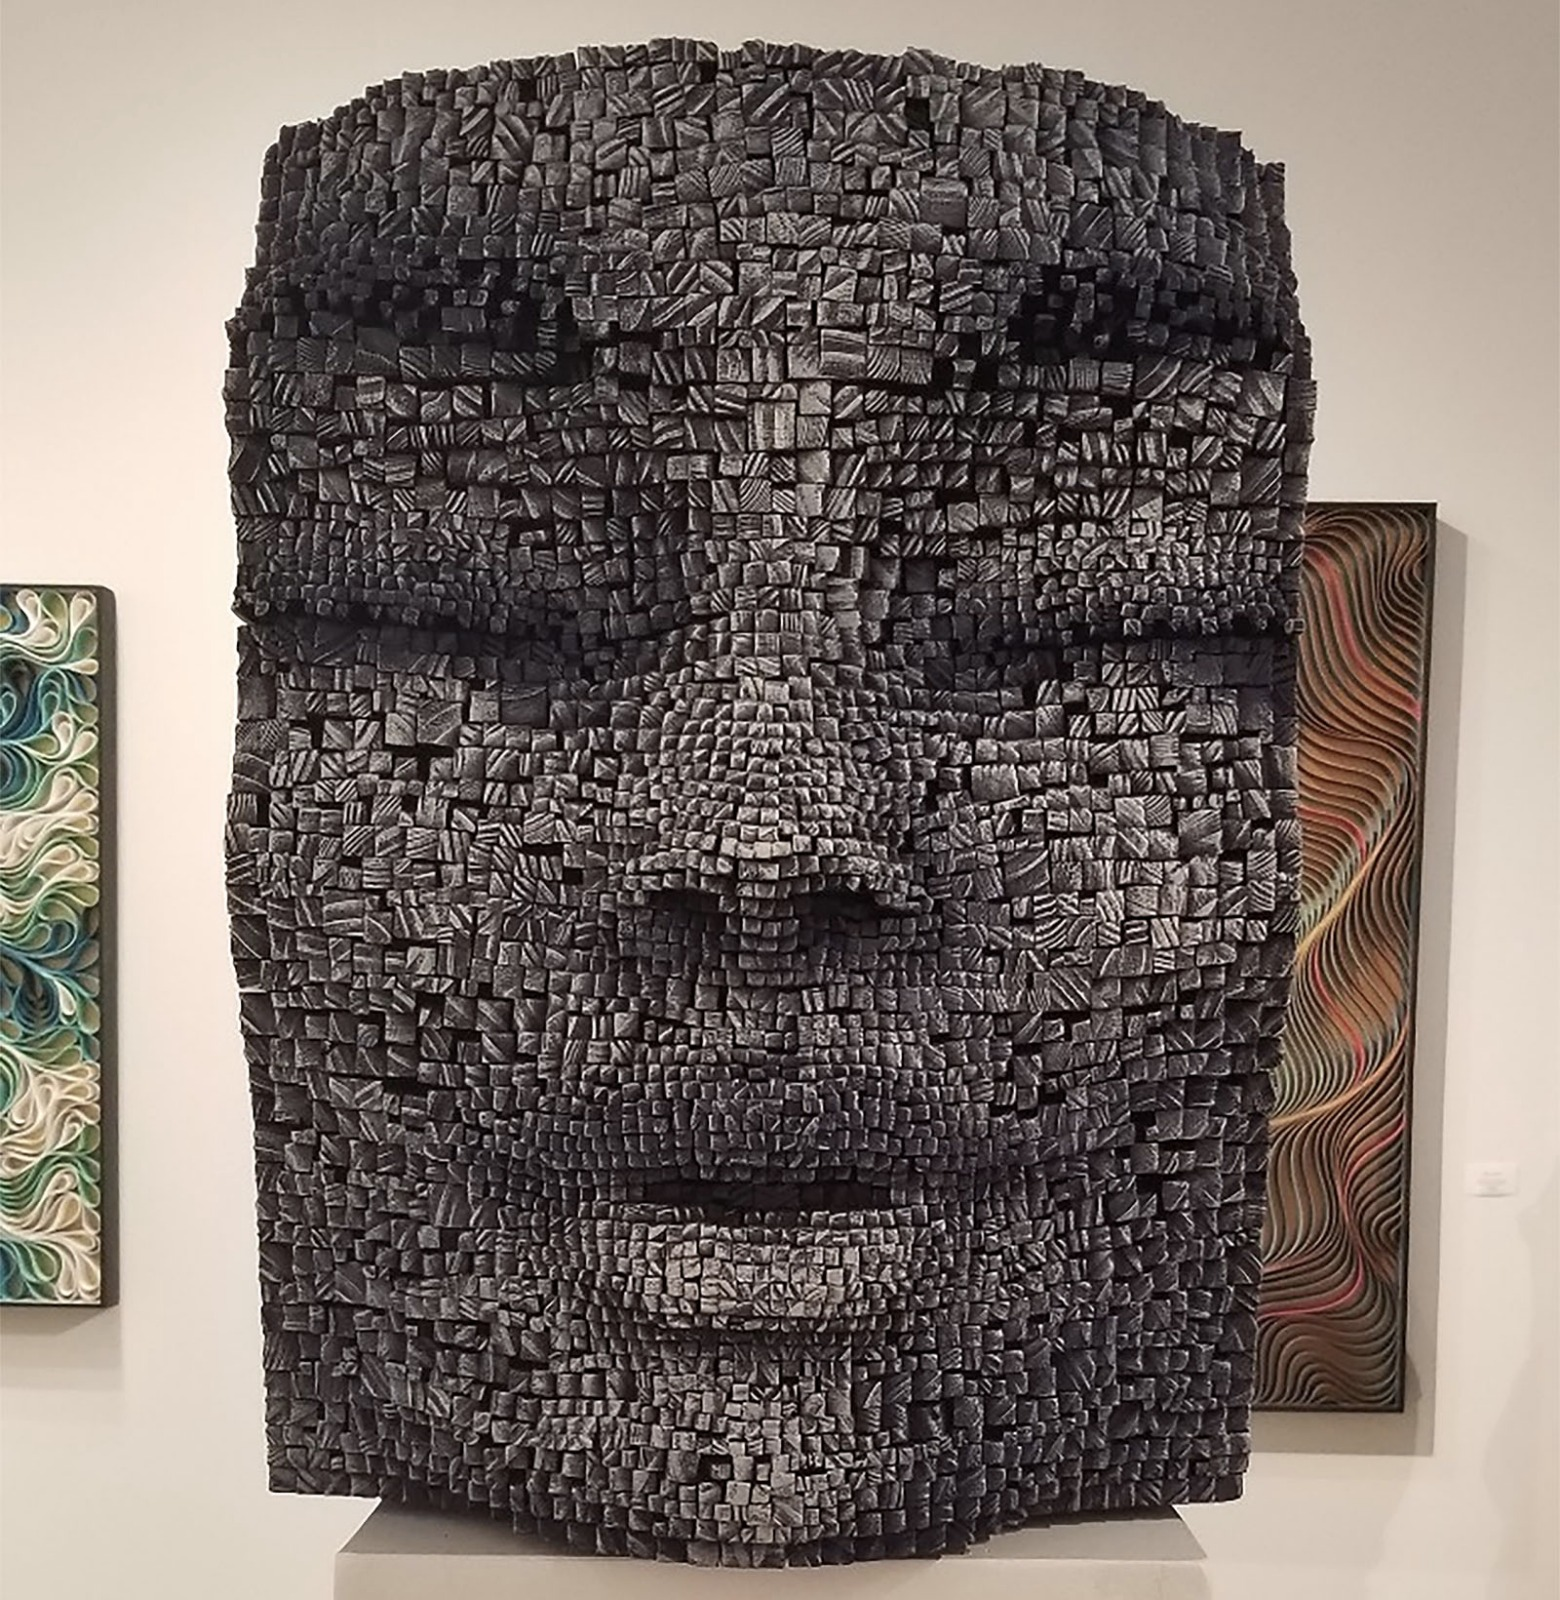 Art Basel Face Sculpture